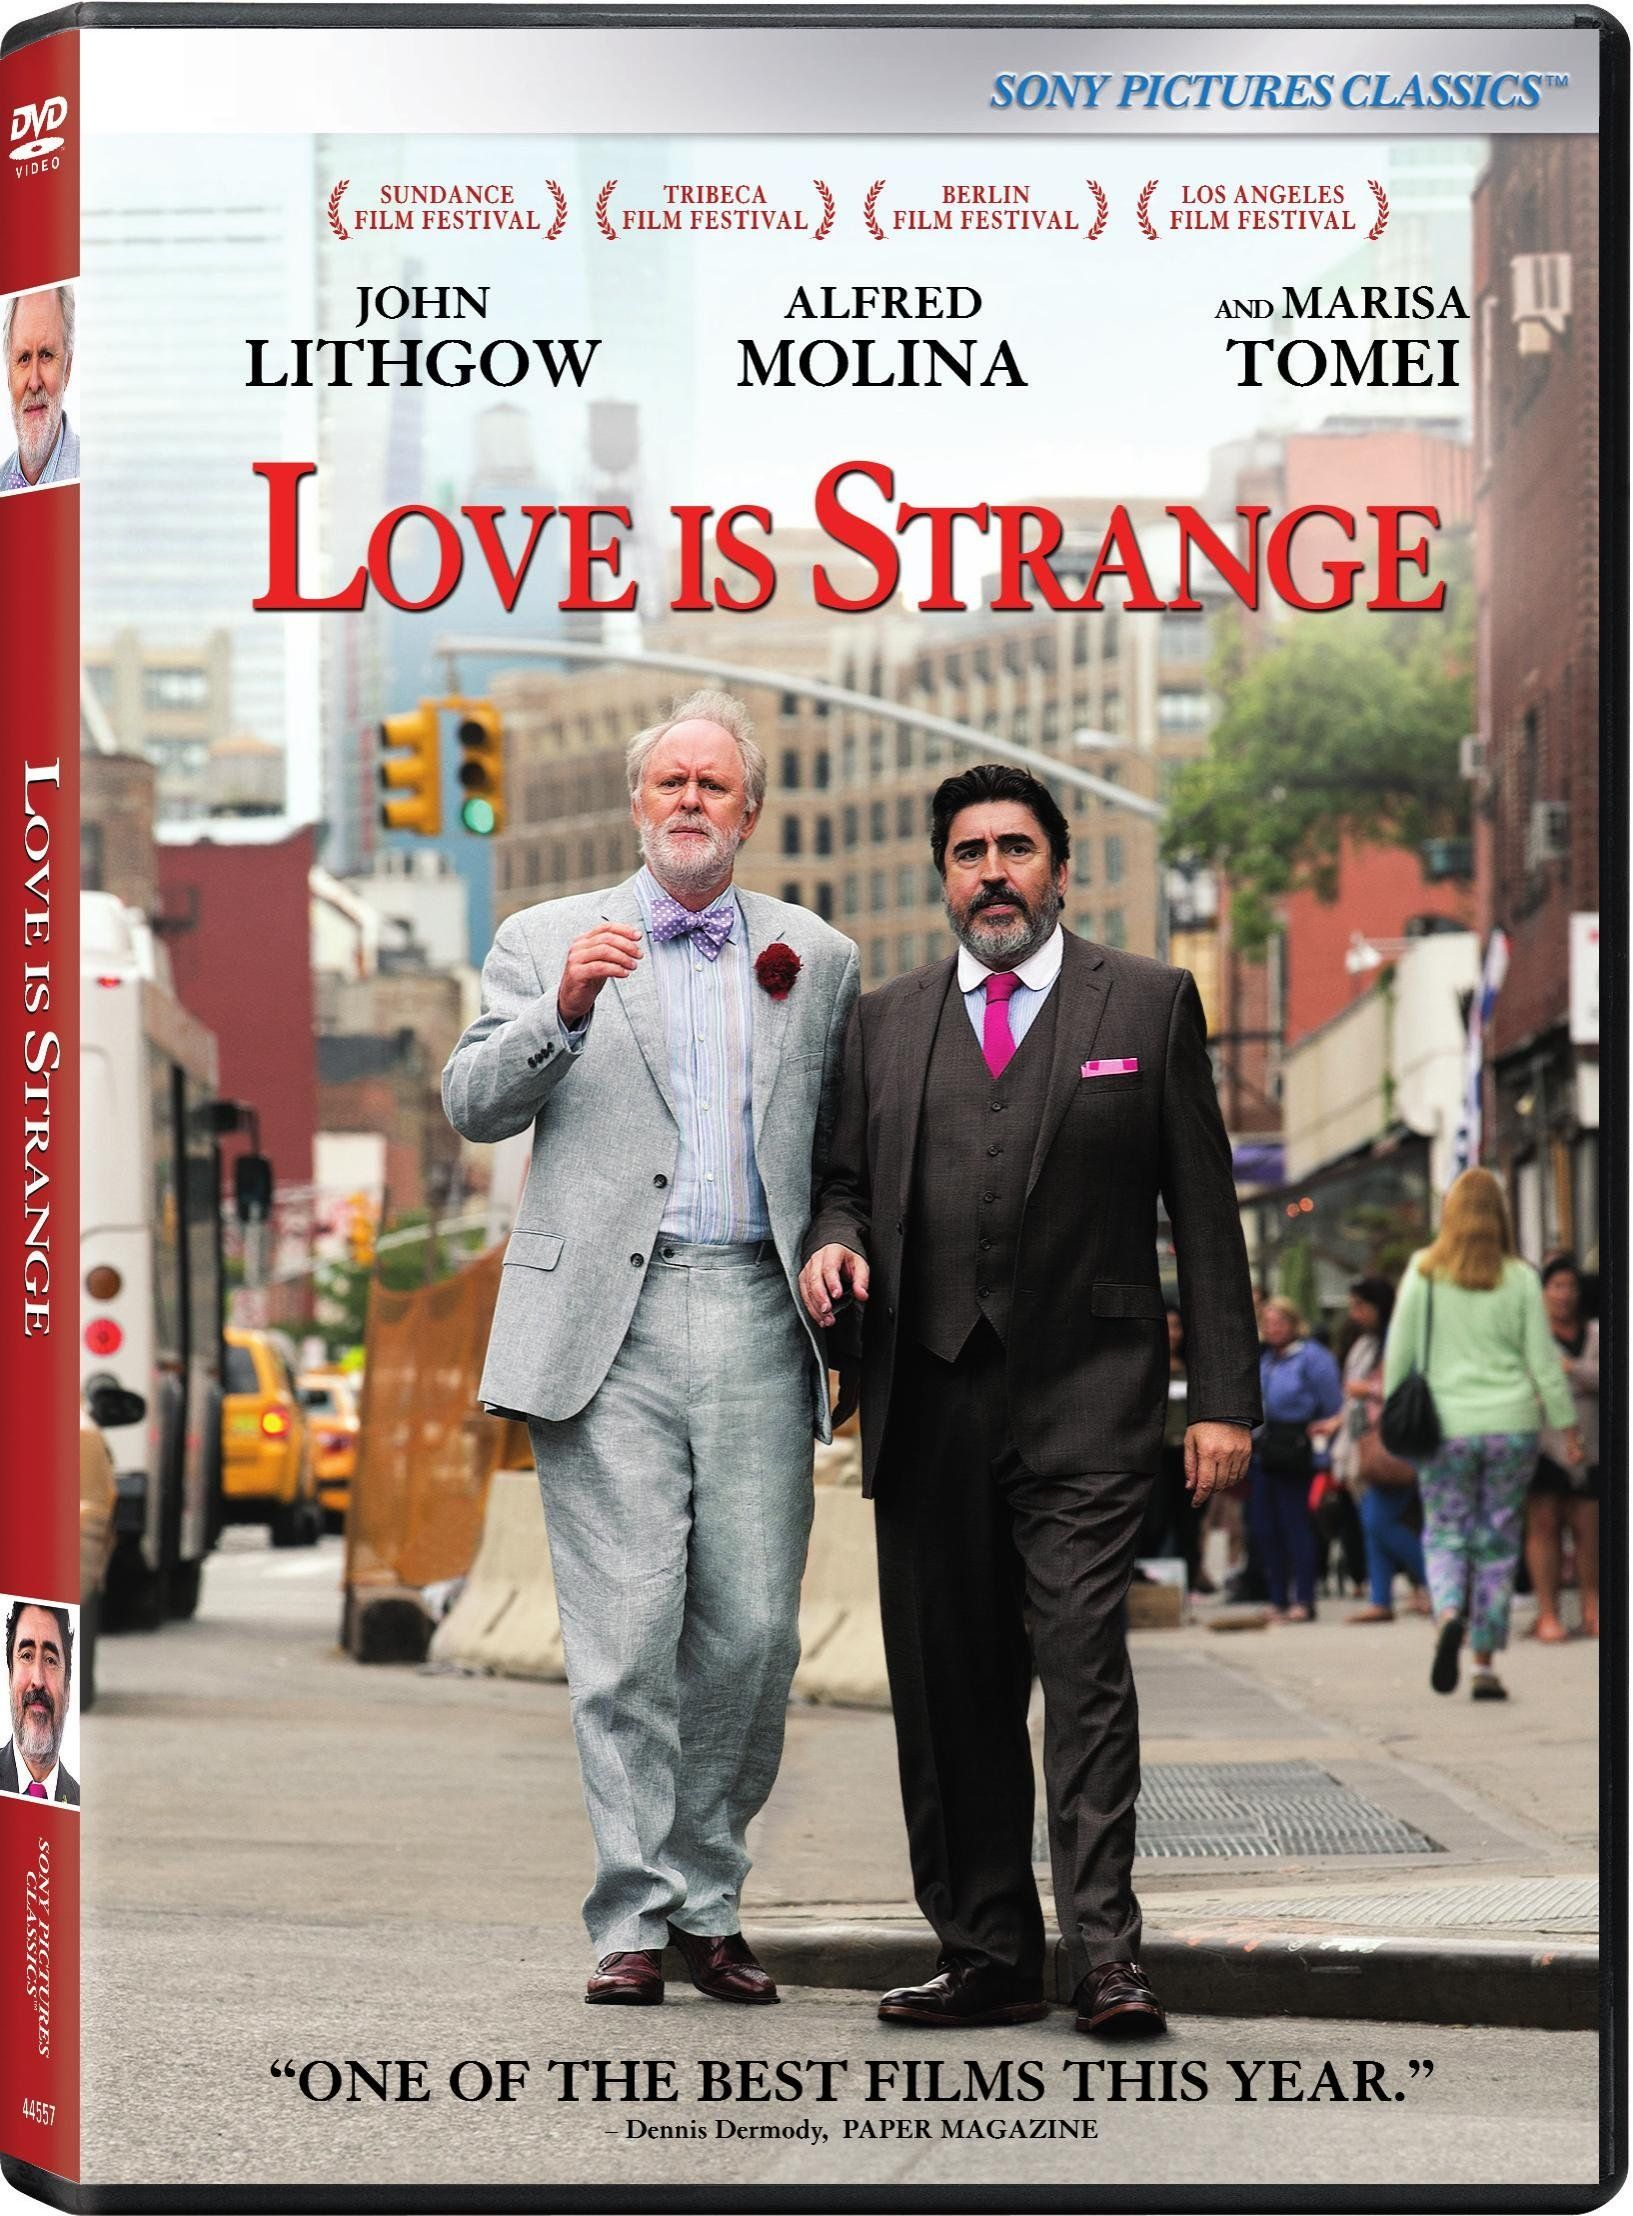 Love is Strange Sony pictures classics, New movies, The